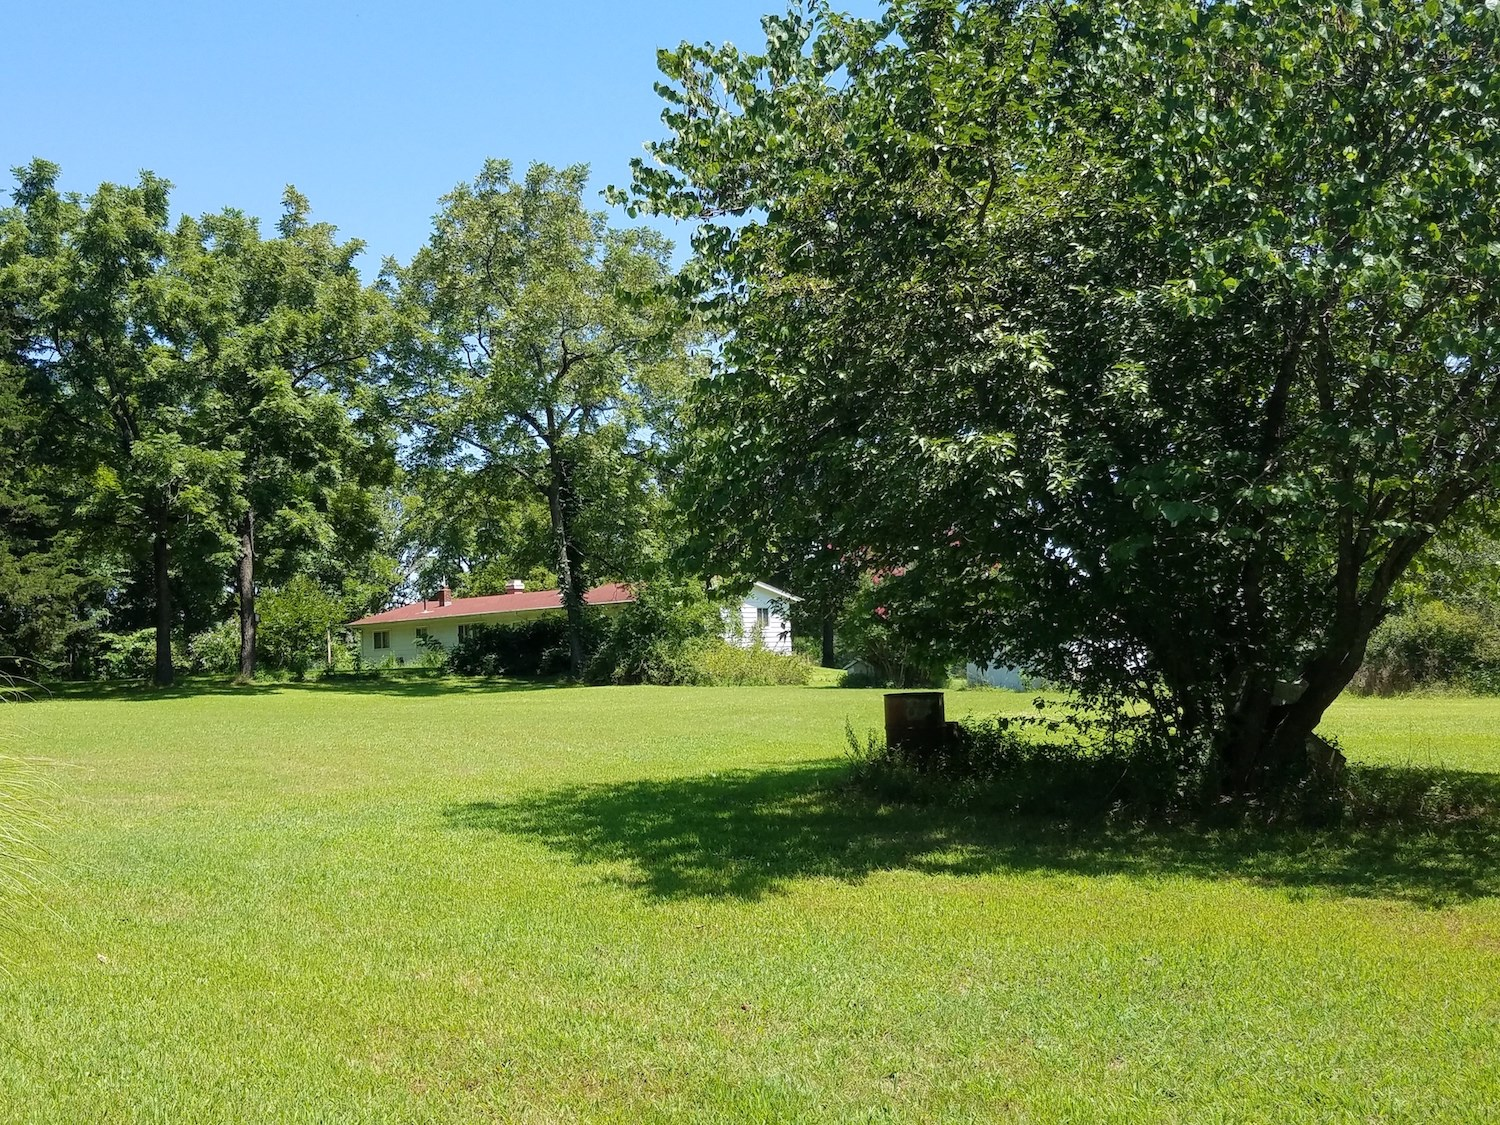 Home on Surveyed Acreage For Sale in Howell County, Missouri